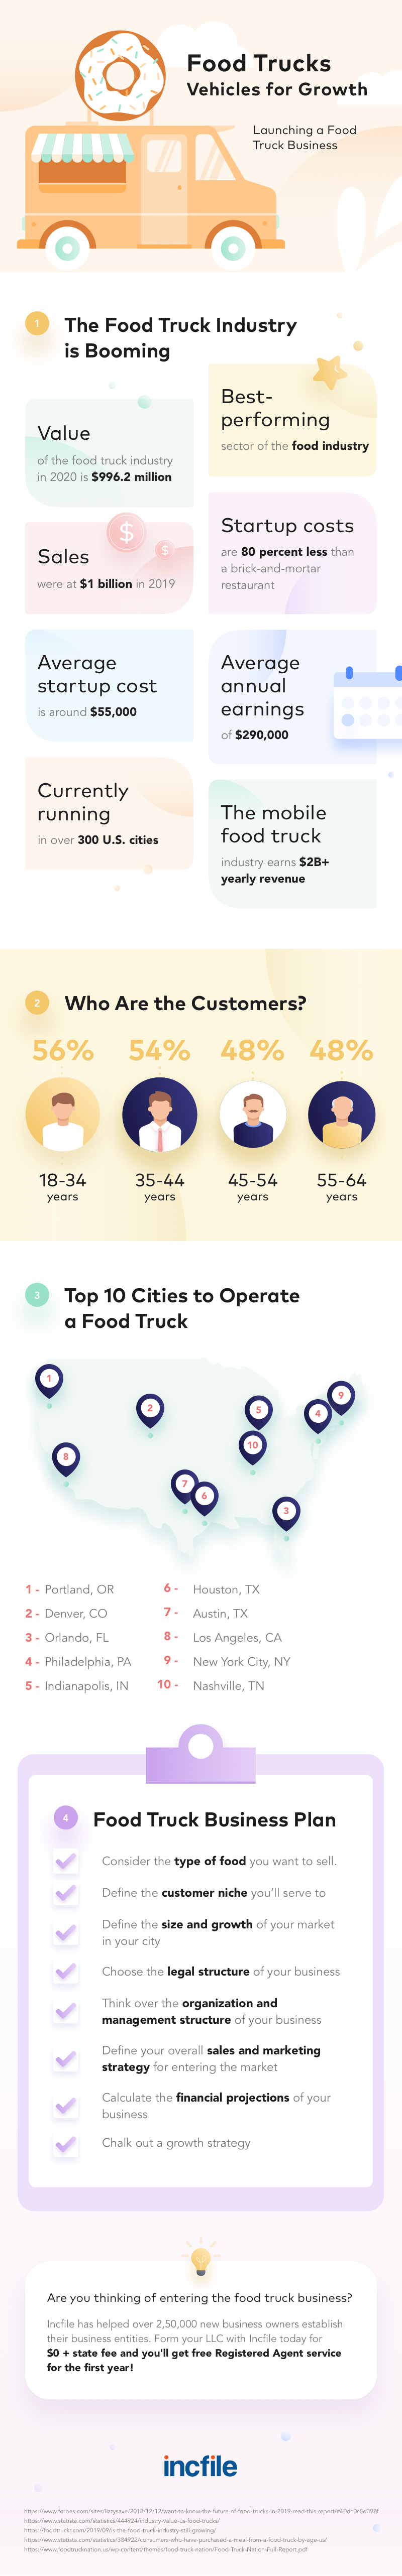 starting-food-truck-business-infographic-plaza